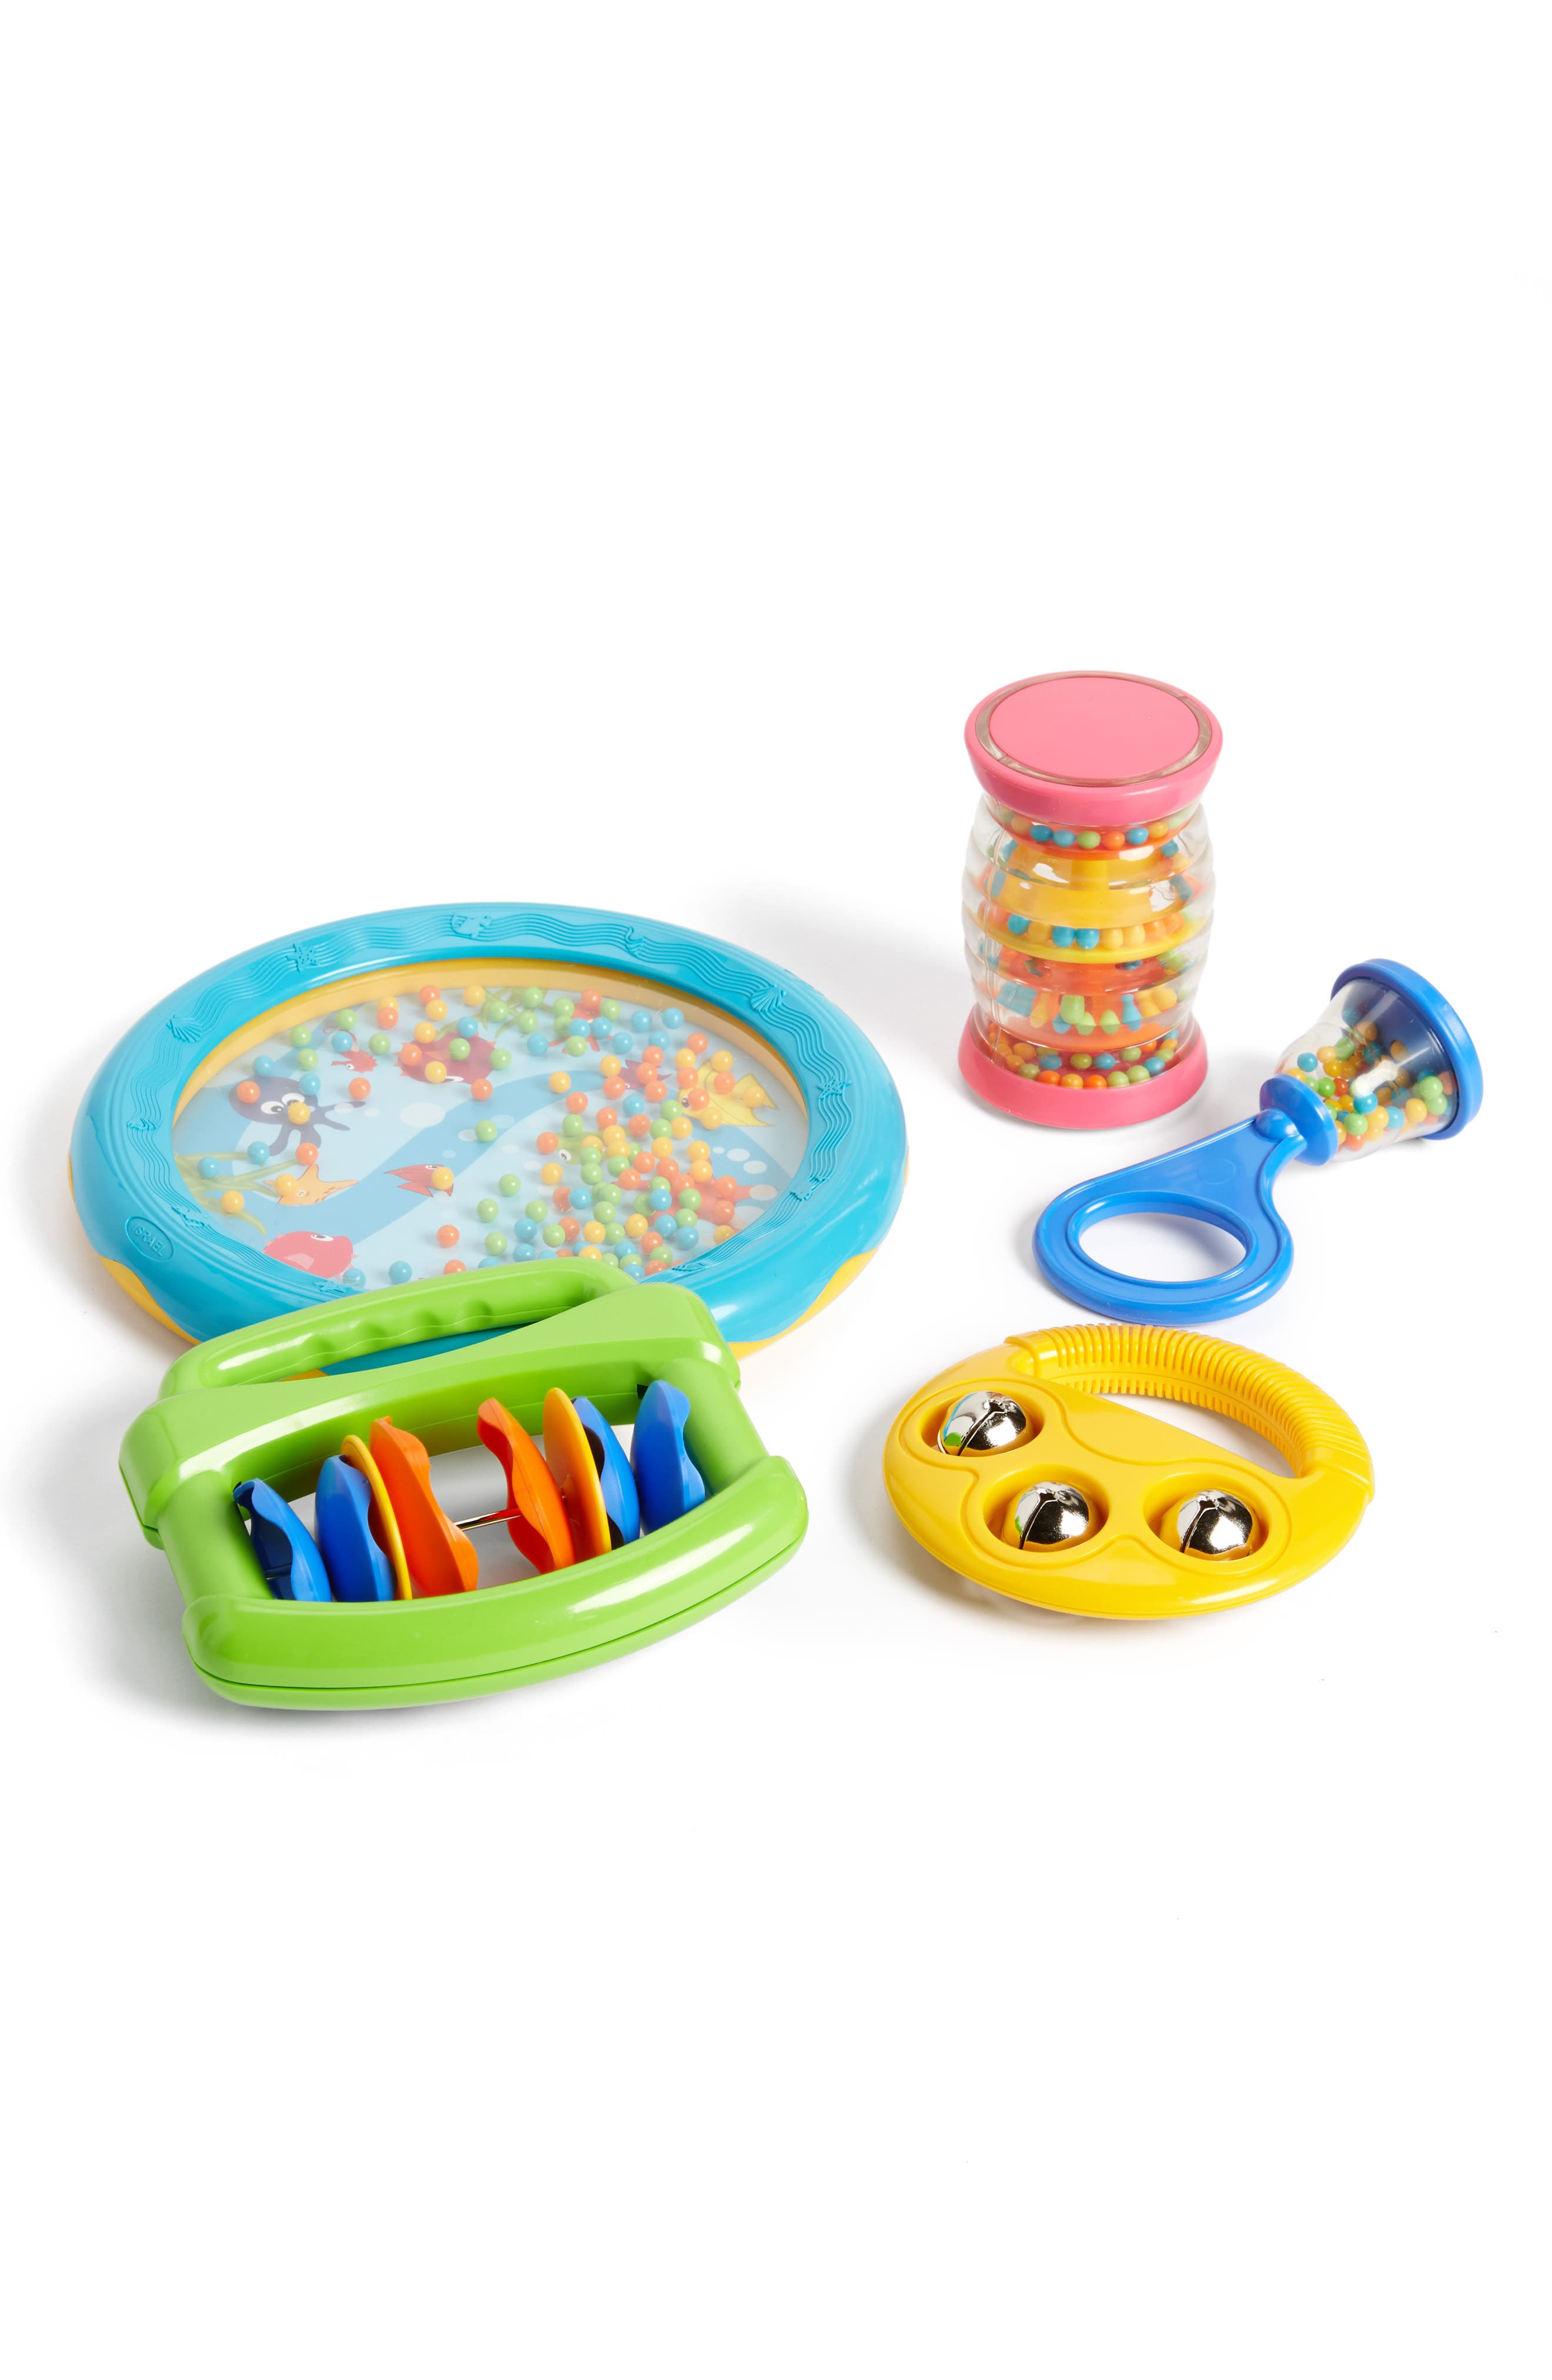 Baby's First Birthday 5-Piece Play Set,                             Main thumbnail 1, color,                             400